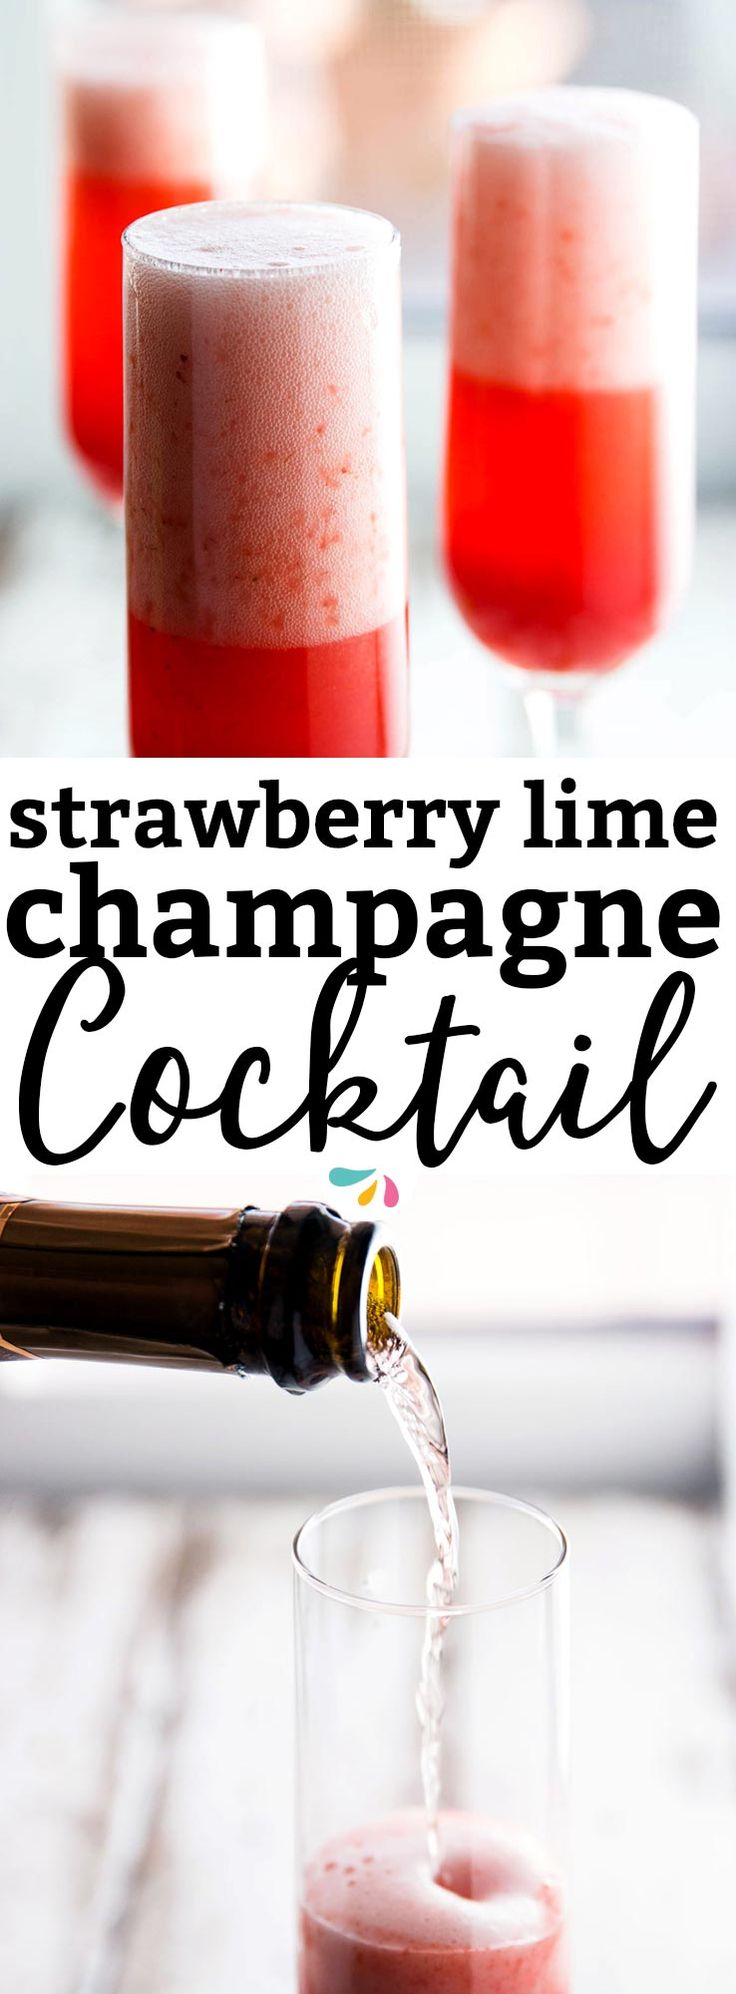 This 3 Ingredient Strawberry Lime Champagne Cocktail is the perfect drink for any festive occasion! Be it Christmas, New Year's Eve, Valentine's Day, Easter or even brunch on Mother's Day - this is quick and easy to make and tastes amazing! | #recipe #drink #newyearseve #newyear #champagne #cocktail